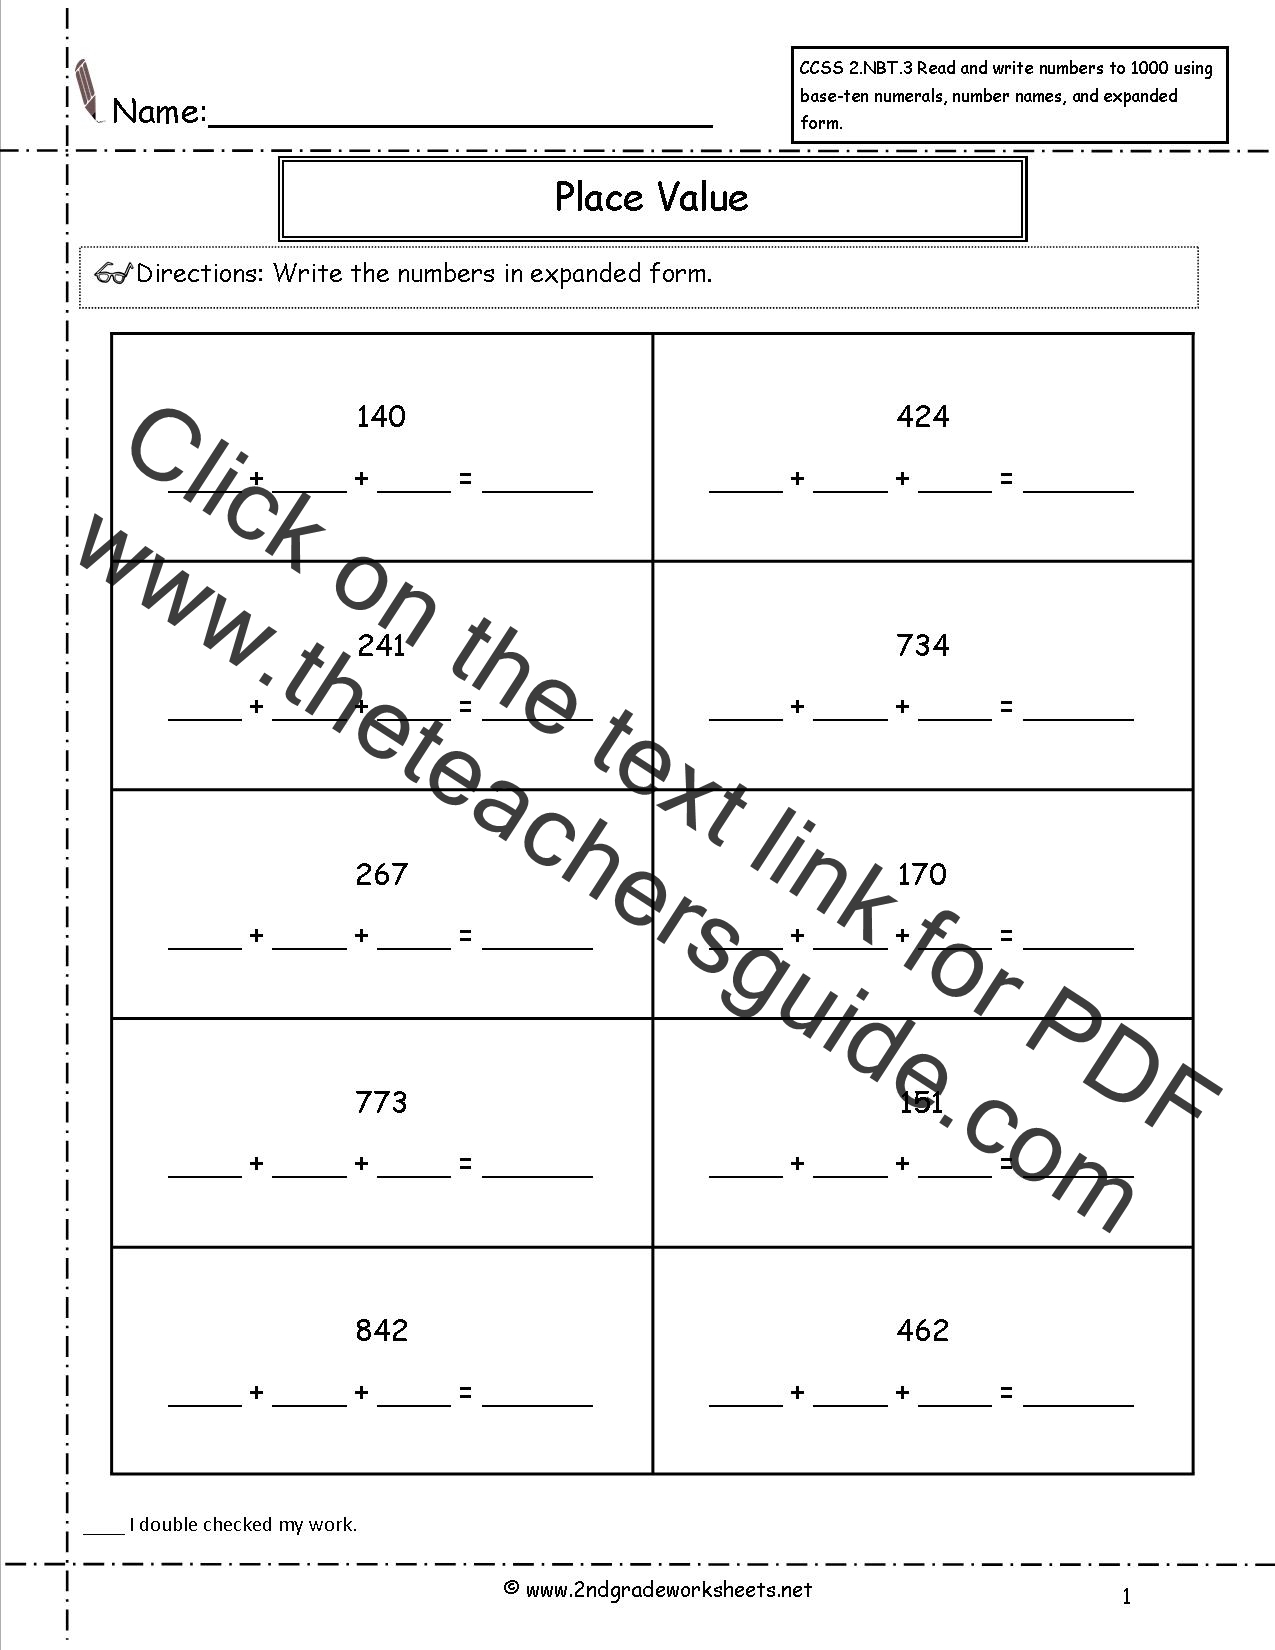 CCSS 2.NBT.3 Worksheets. Place Value Worksheets-Read and Write Numbers